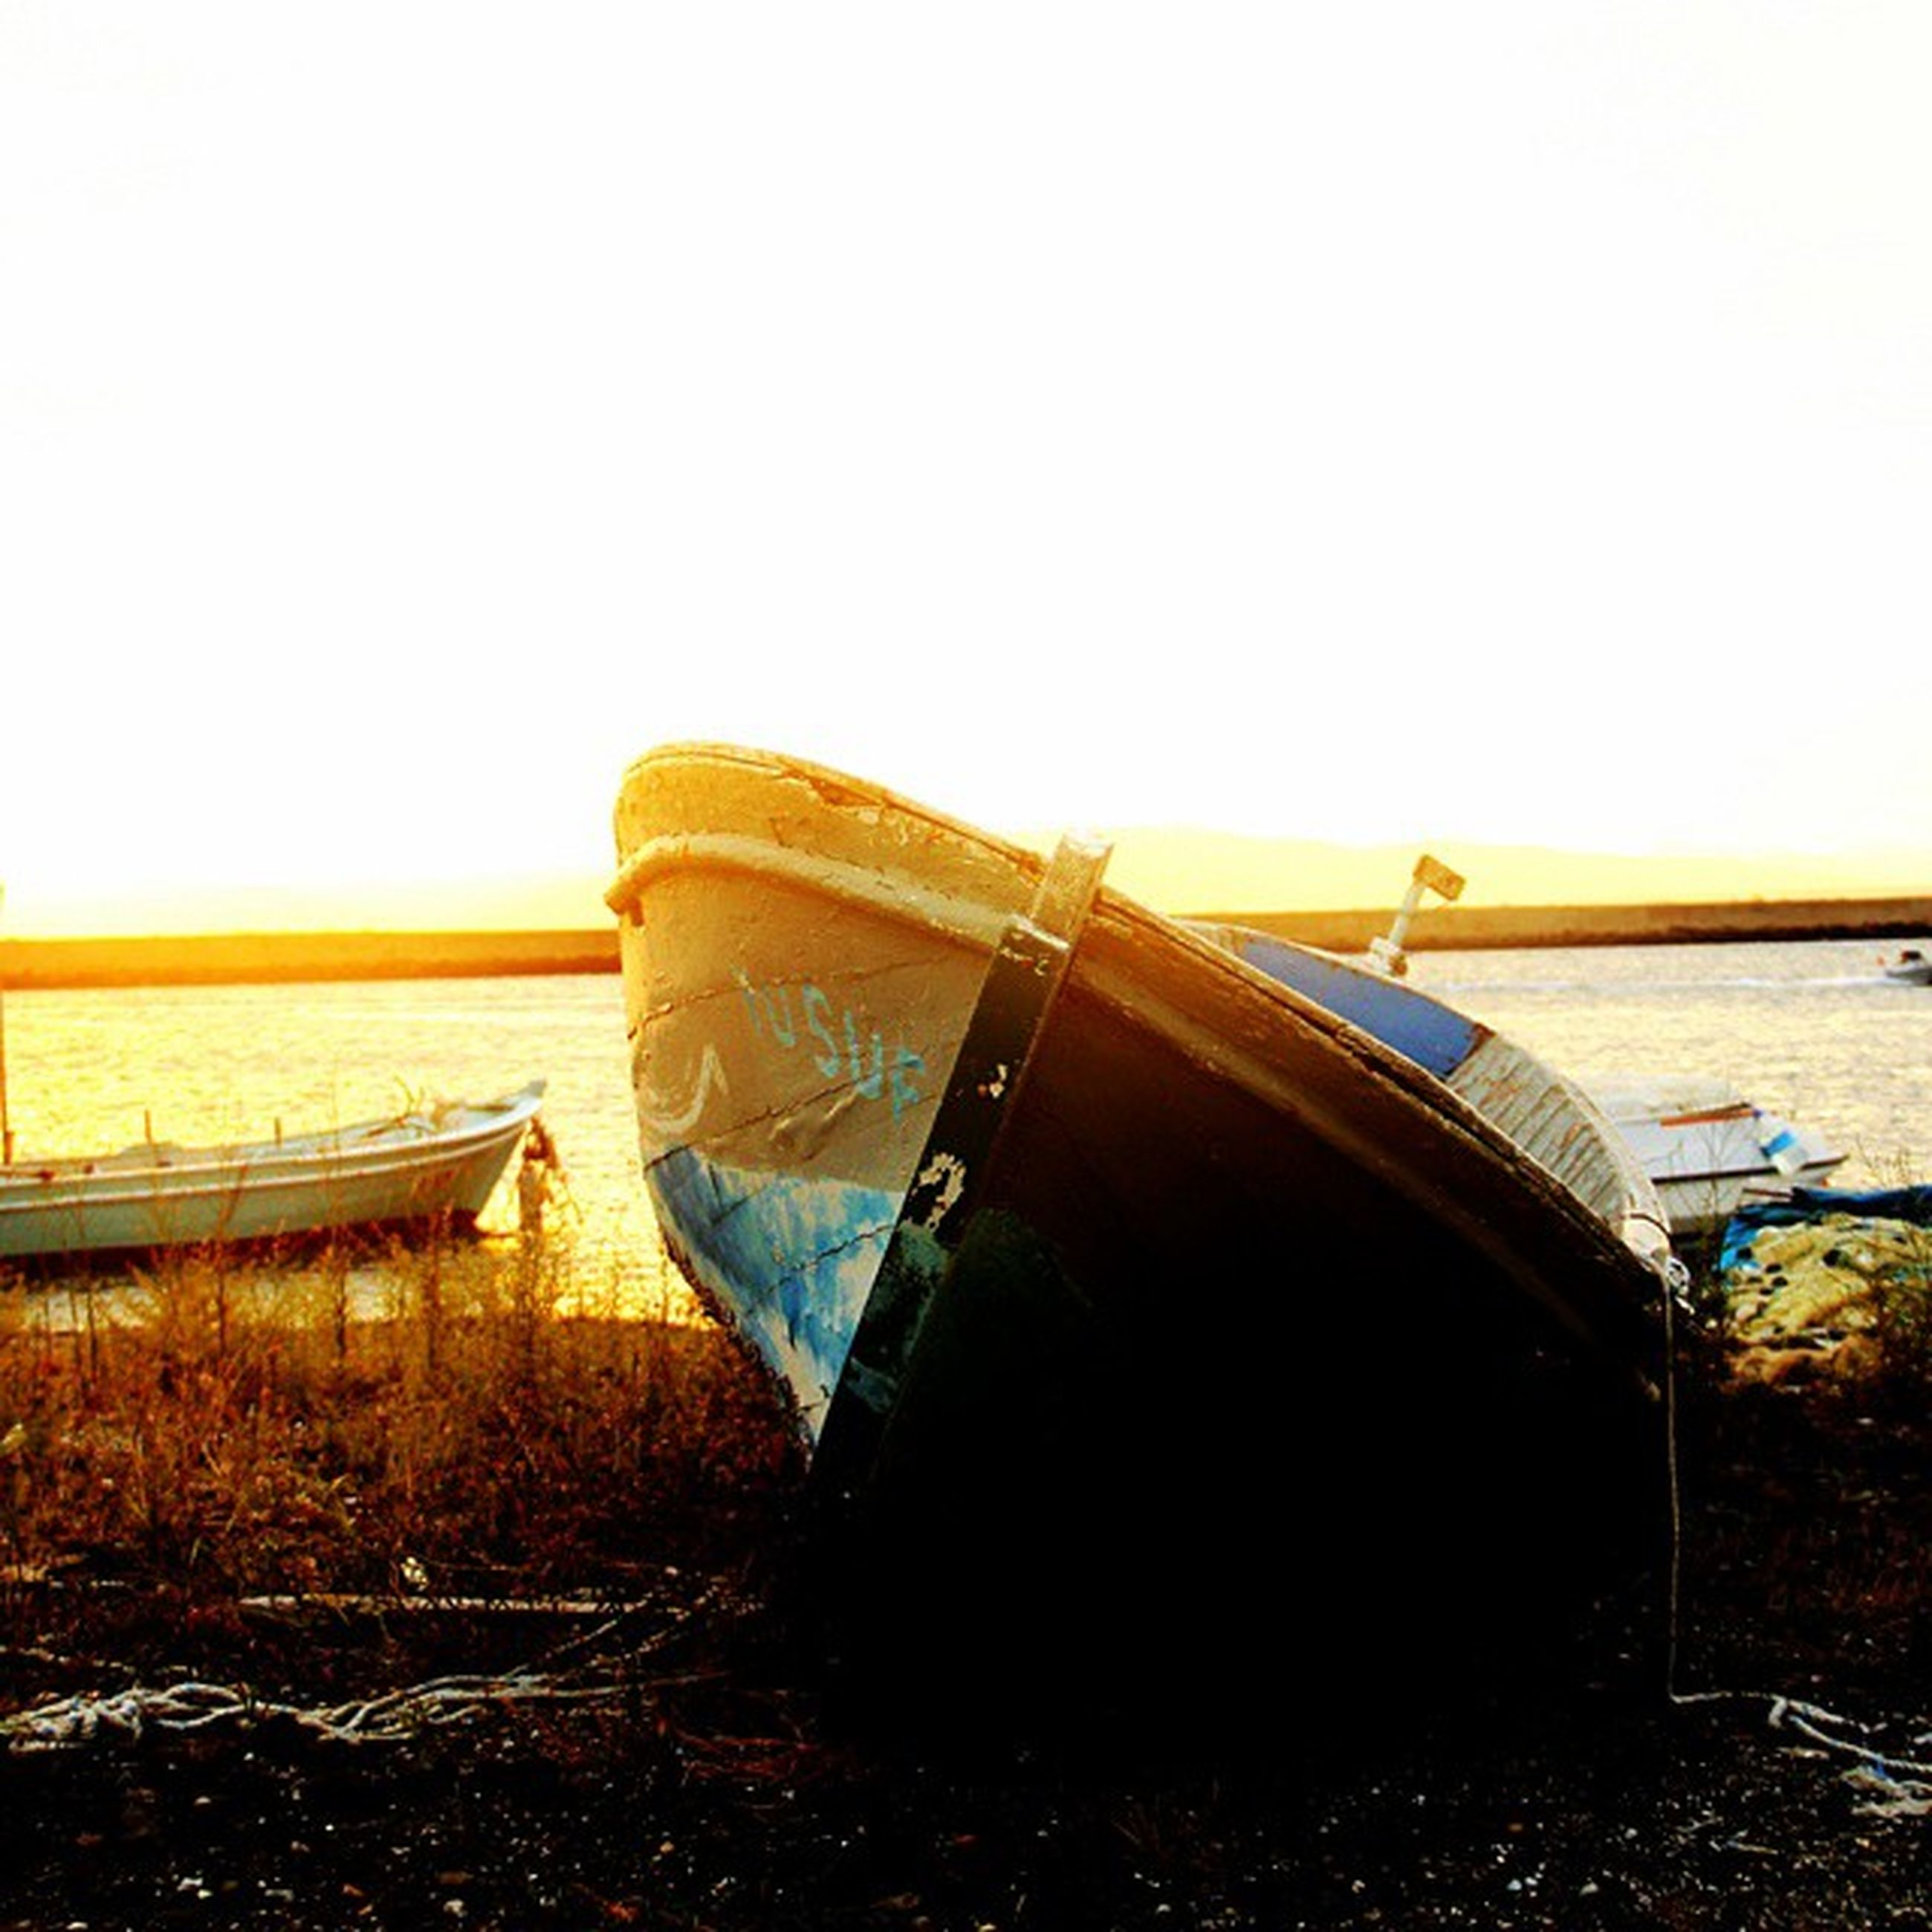 transportation, clear sky, mode of transport, nautical vessel, boat, copy space, water, moored, sea, abandoned, outdoors, travel, no people, sky, nature, tranquility, beach, sunlight, land vehicle, tranquil scene